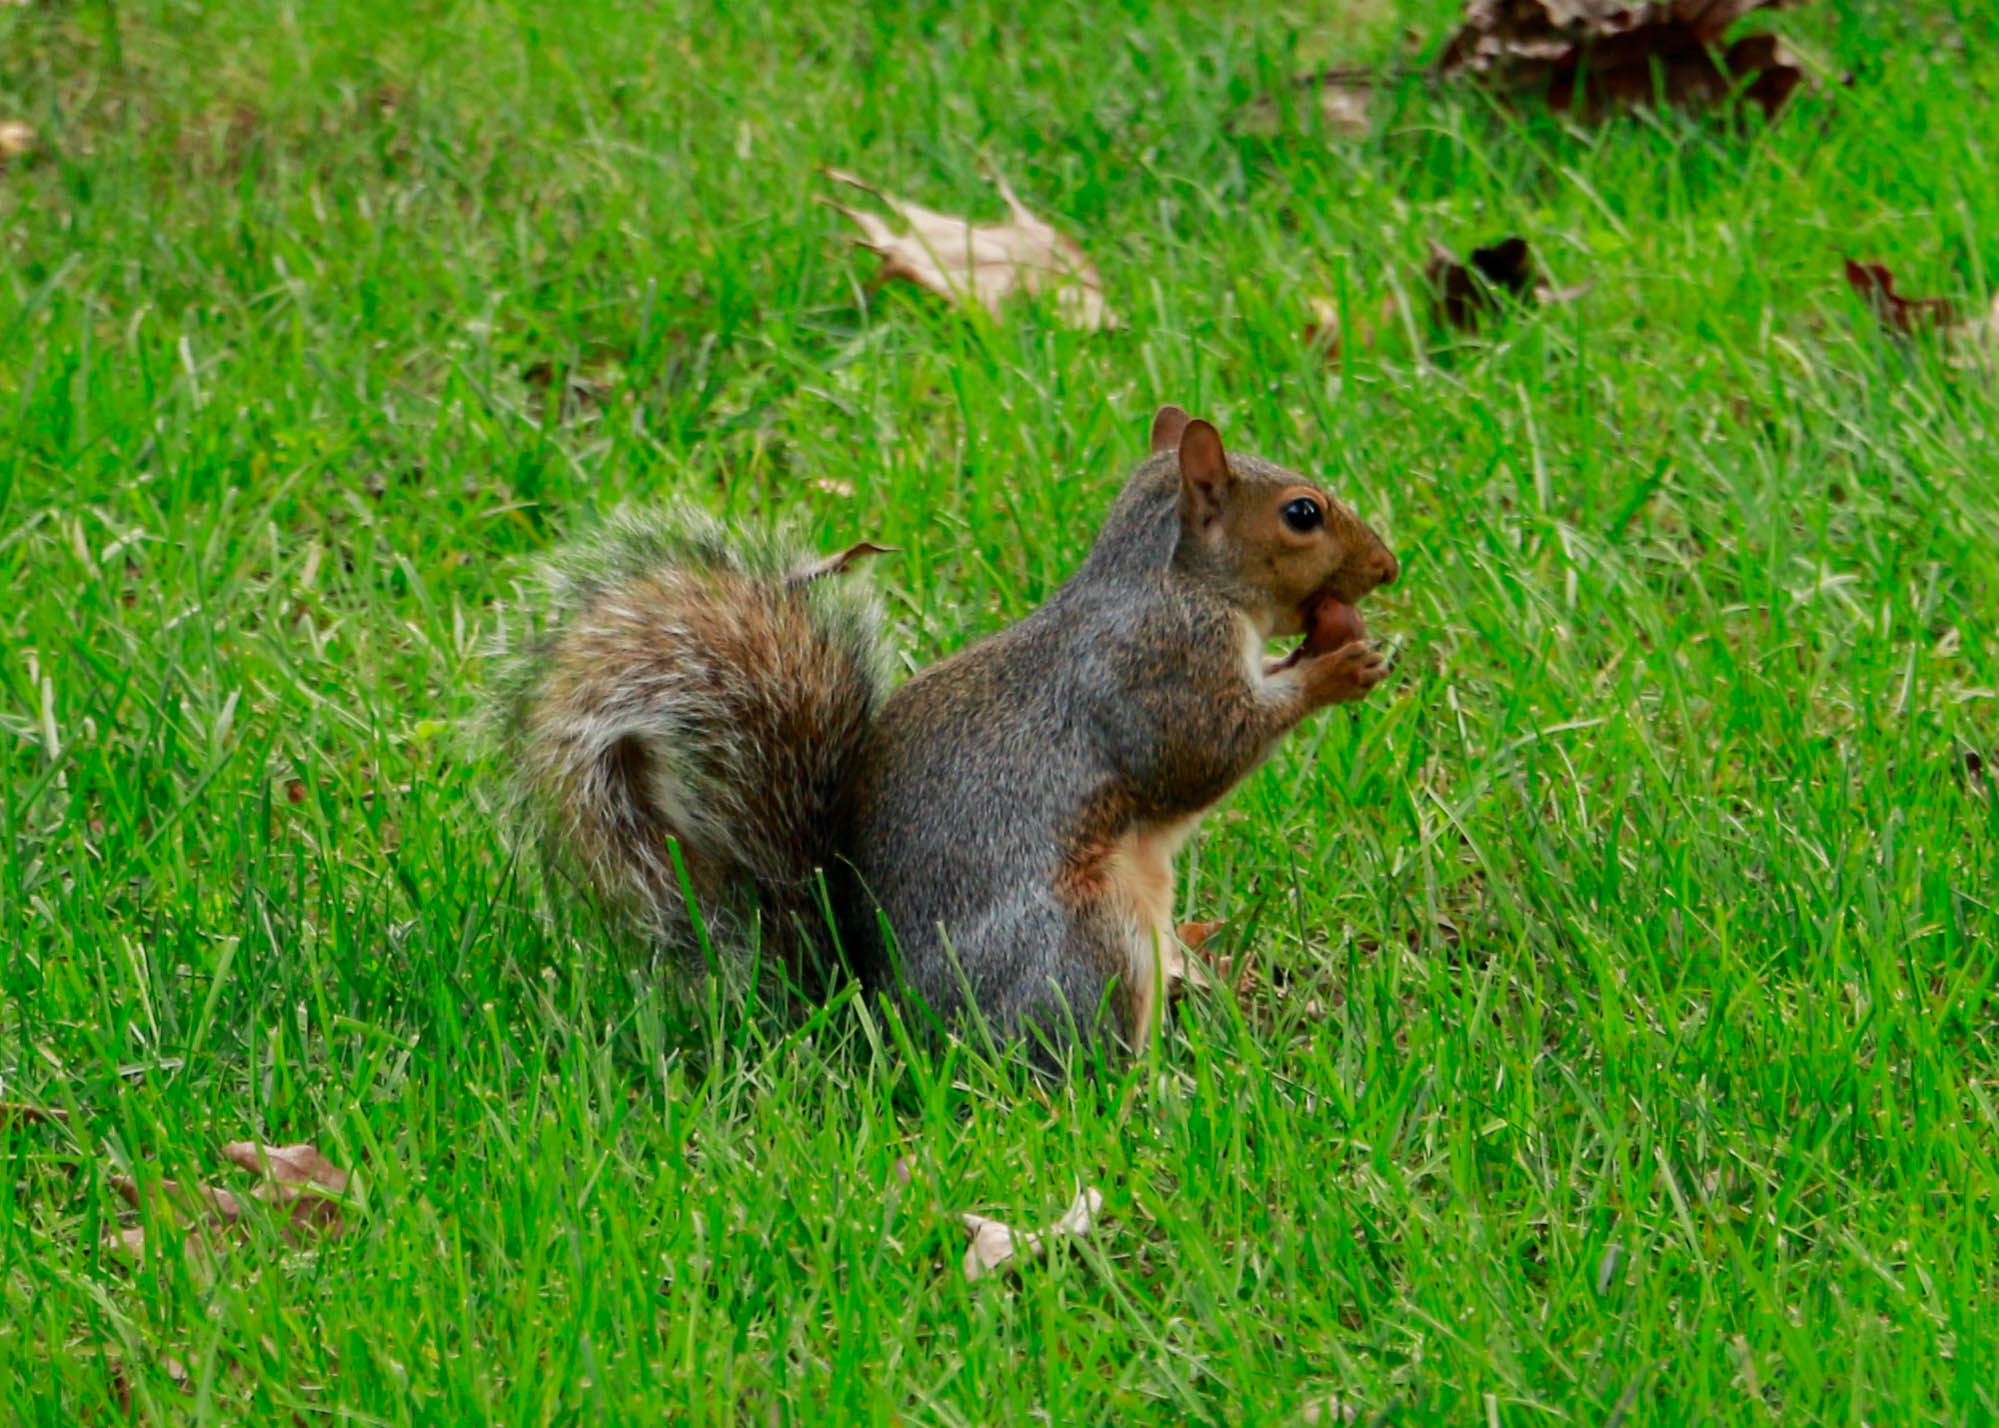 Gettysburg students have grown fond of the many squirrels seen roving around campus (Photo Merlyn Maldonado/The Gettysburgian)